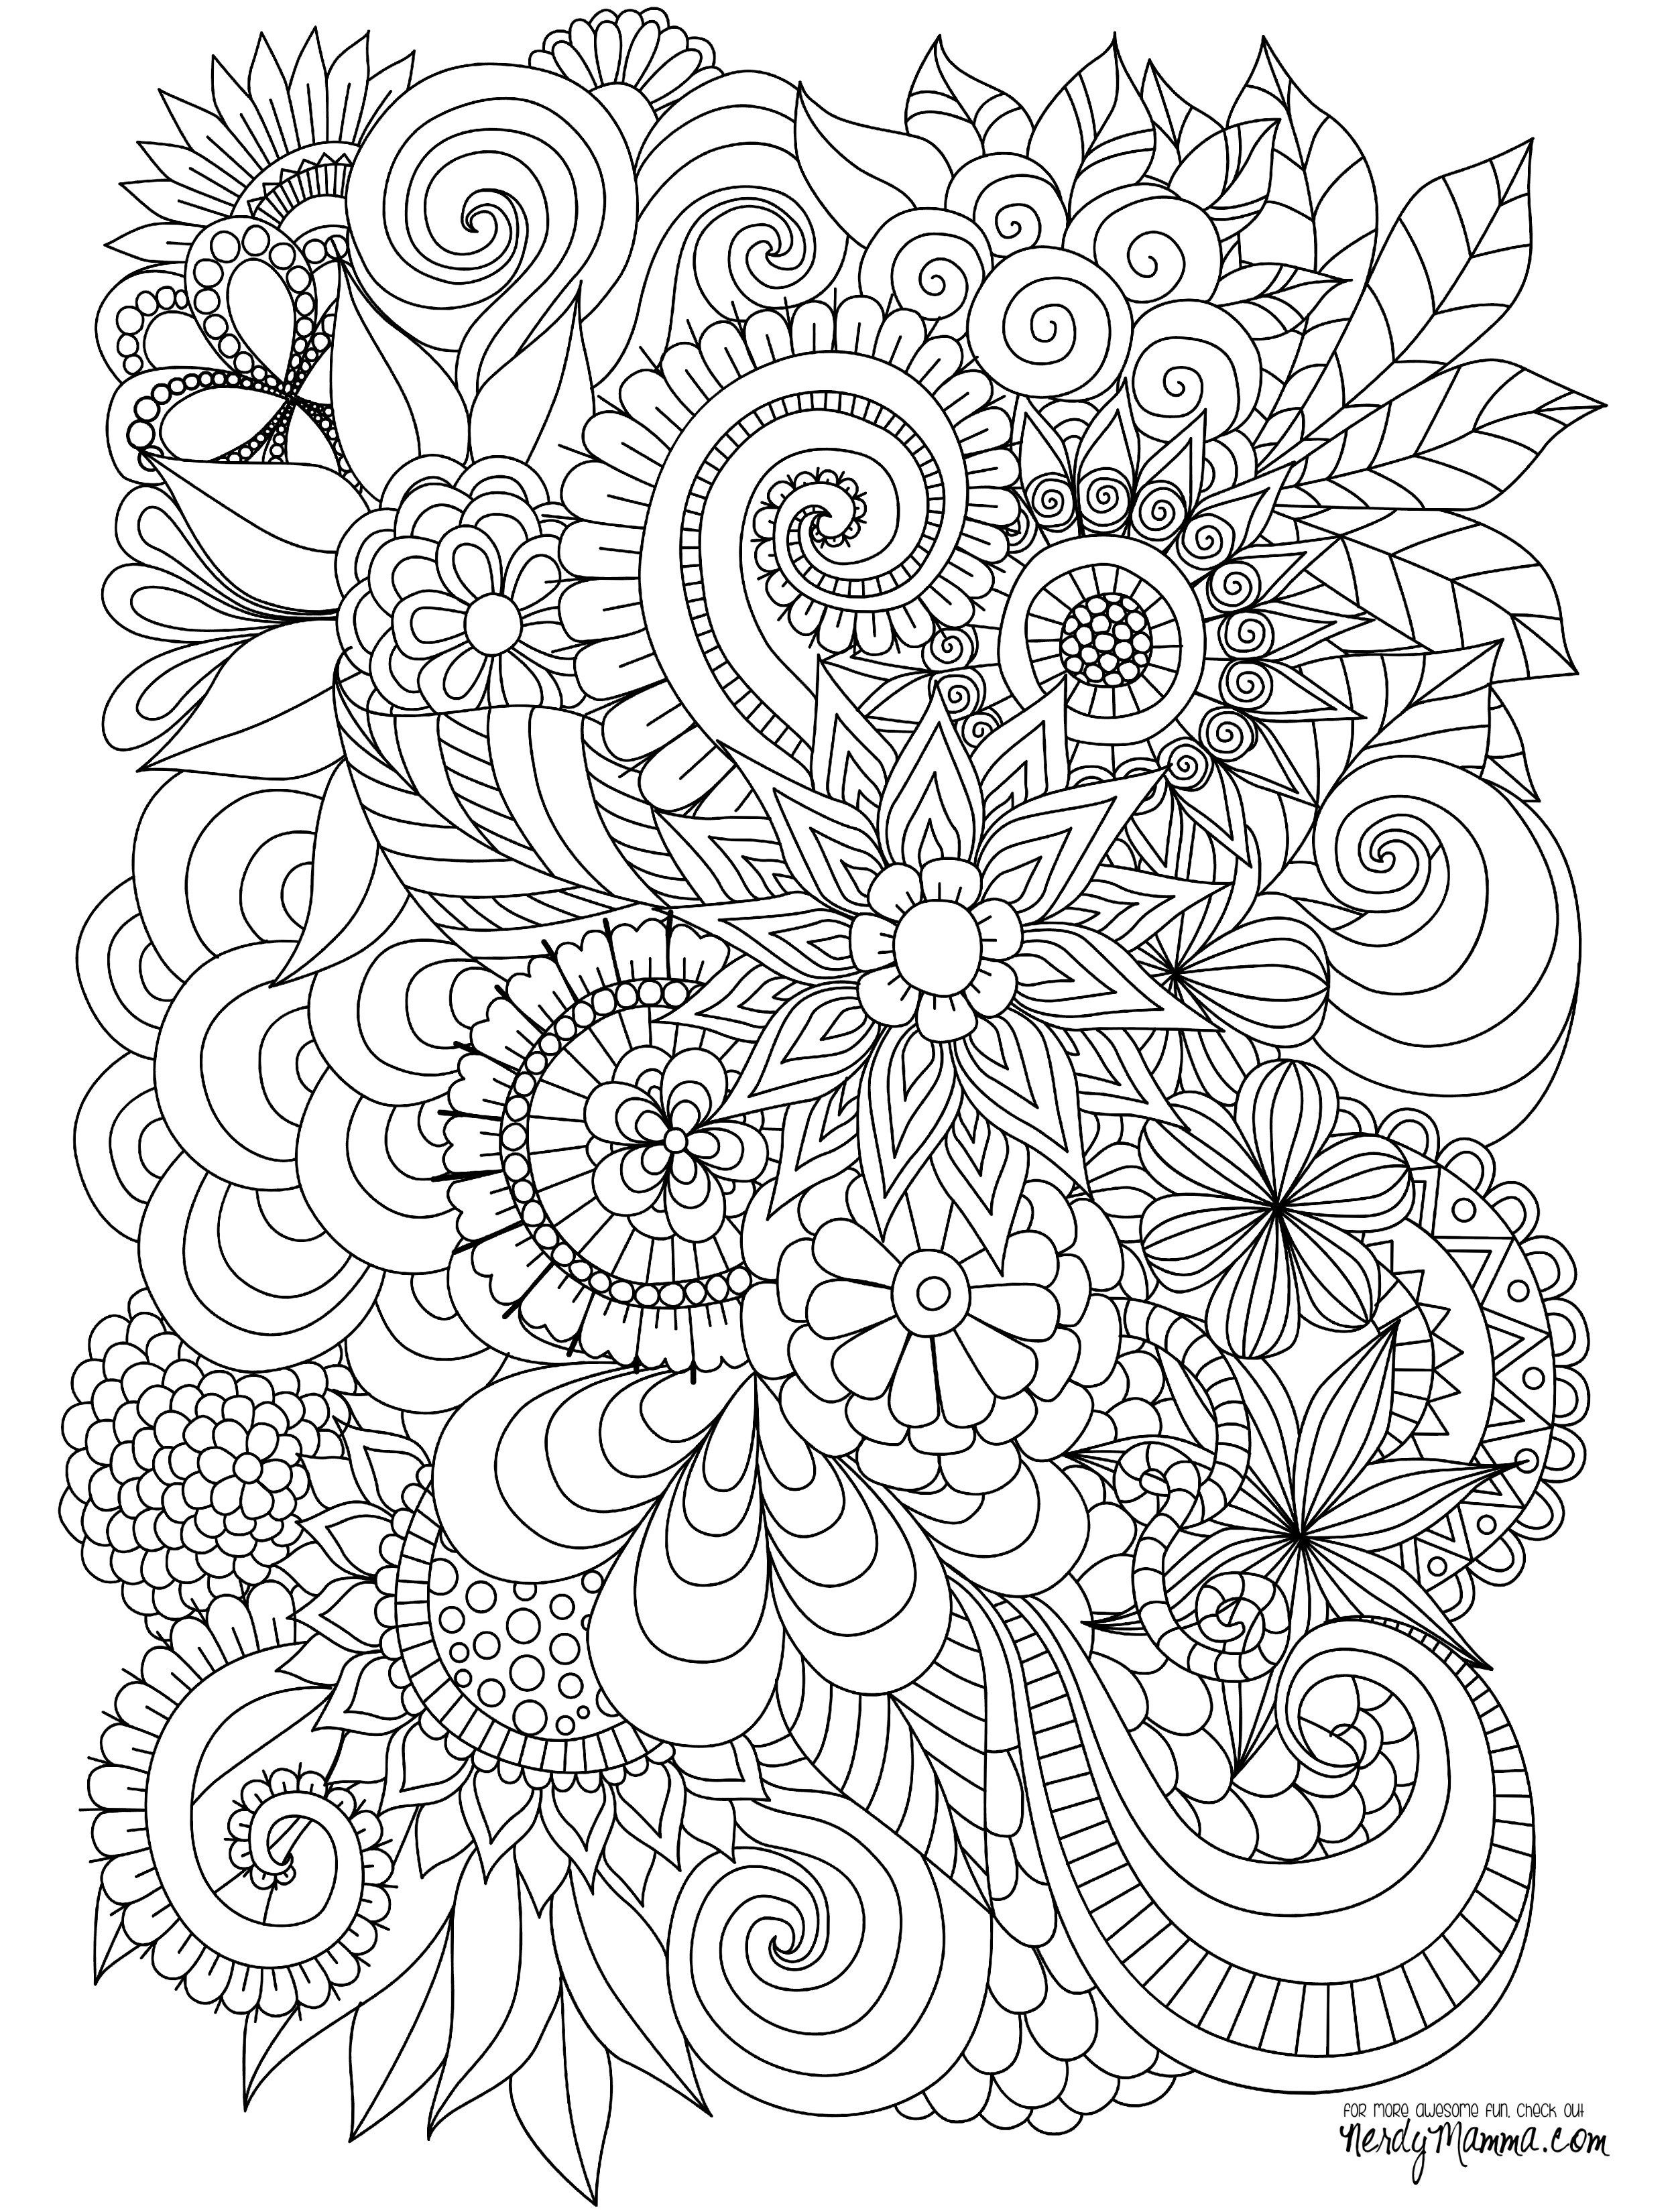 Poster Size Coloring Pages  to Print 10m - Save it to your computer